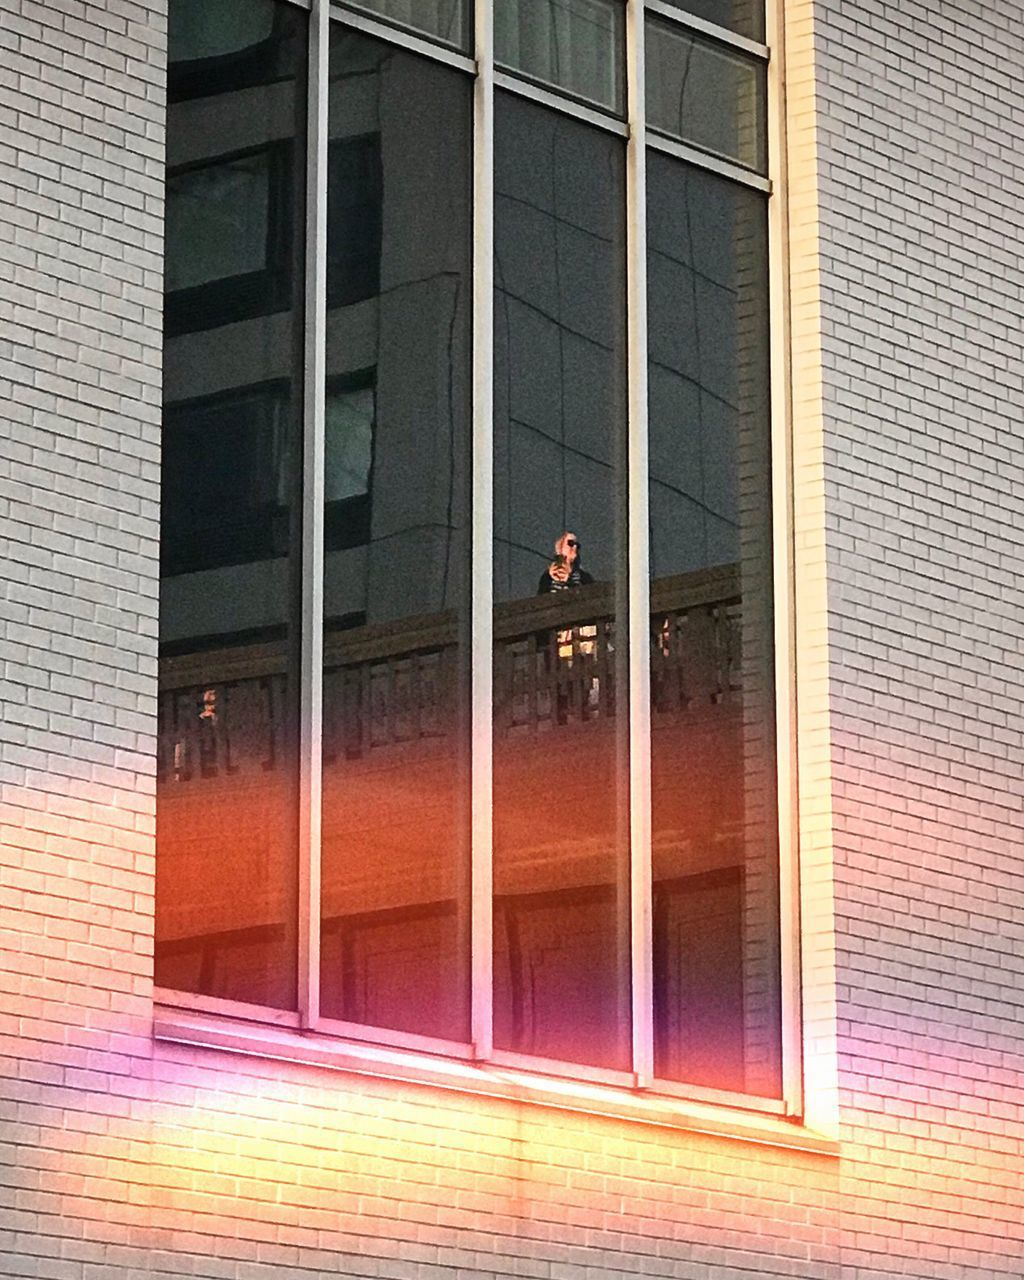 architecture, built structure, building exterior, window, building, glass - material, reflection, no people, glass, day, outdoors, brick, wall, city, brick wall, modern, transparent, wall - building feature, low angle view, purple, place, window frame